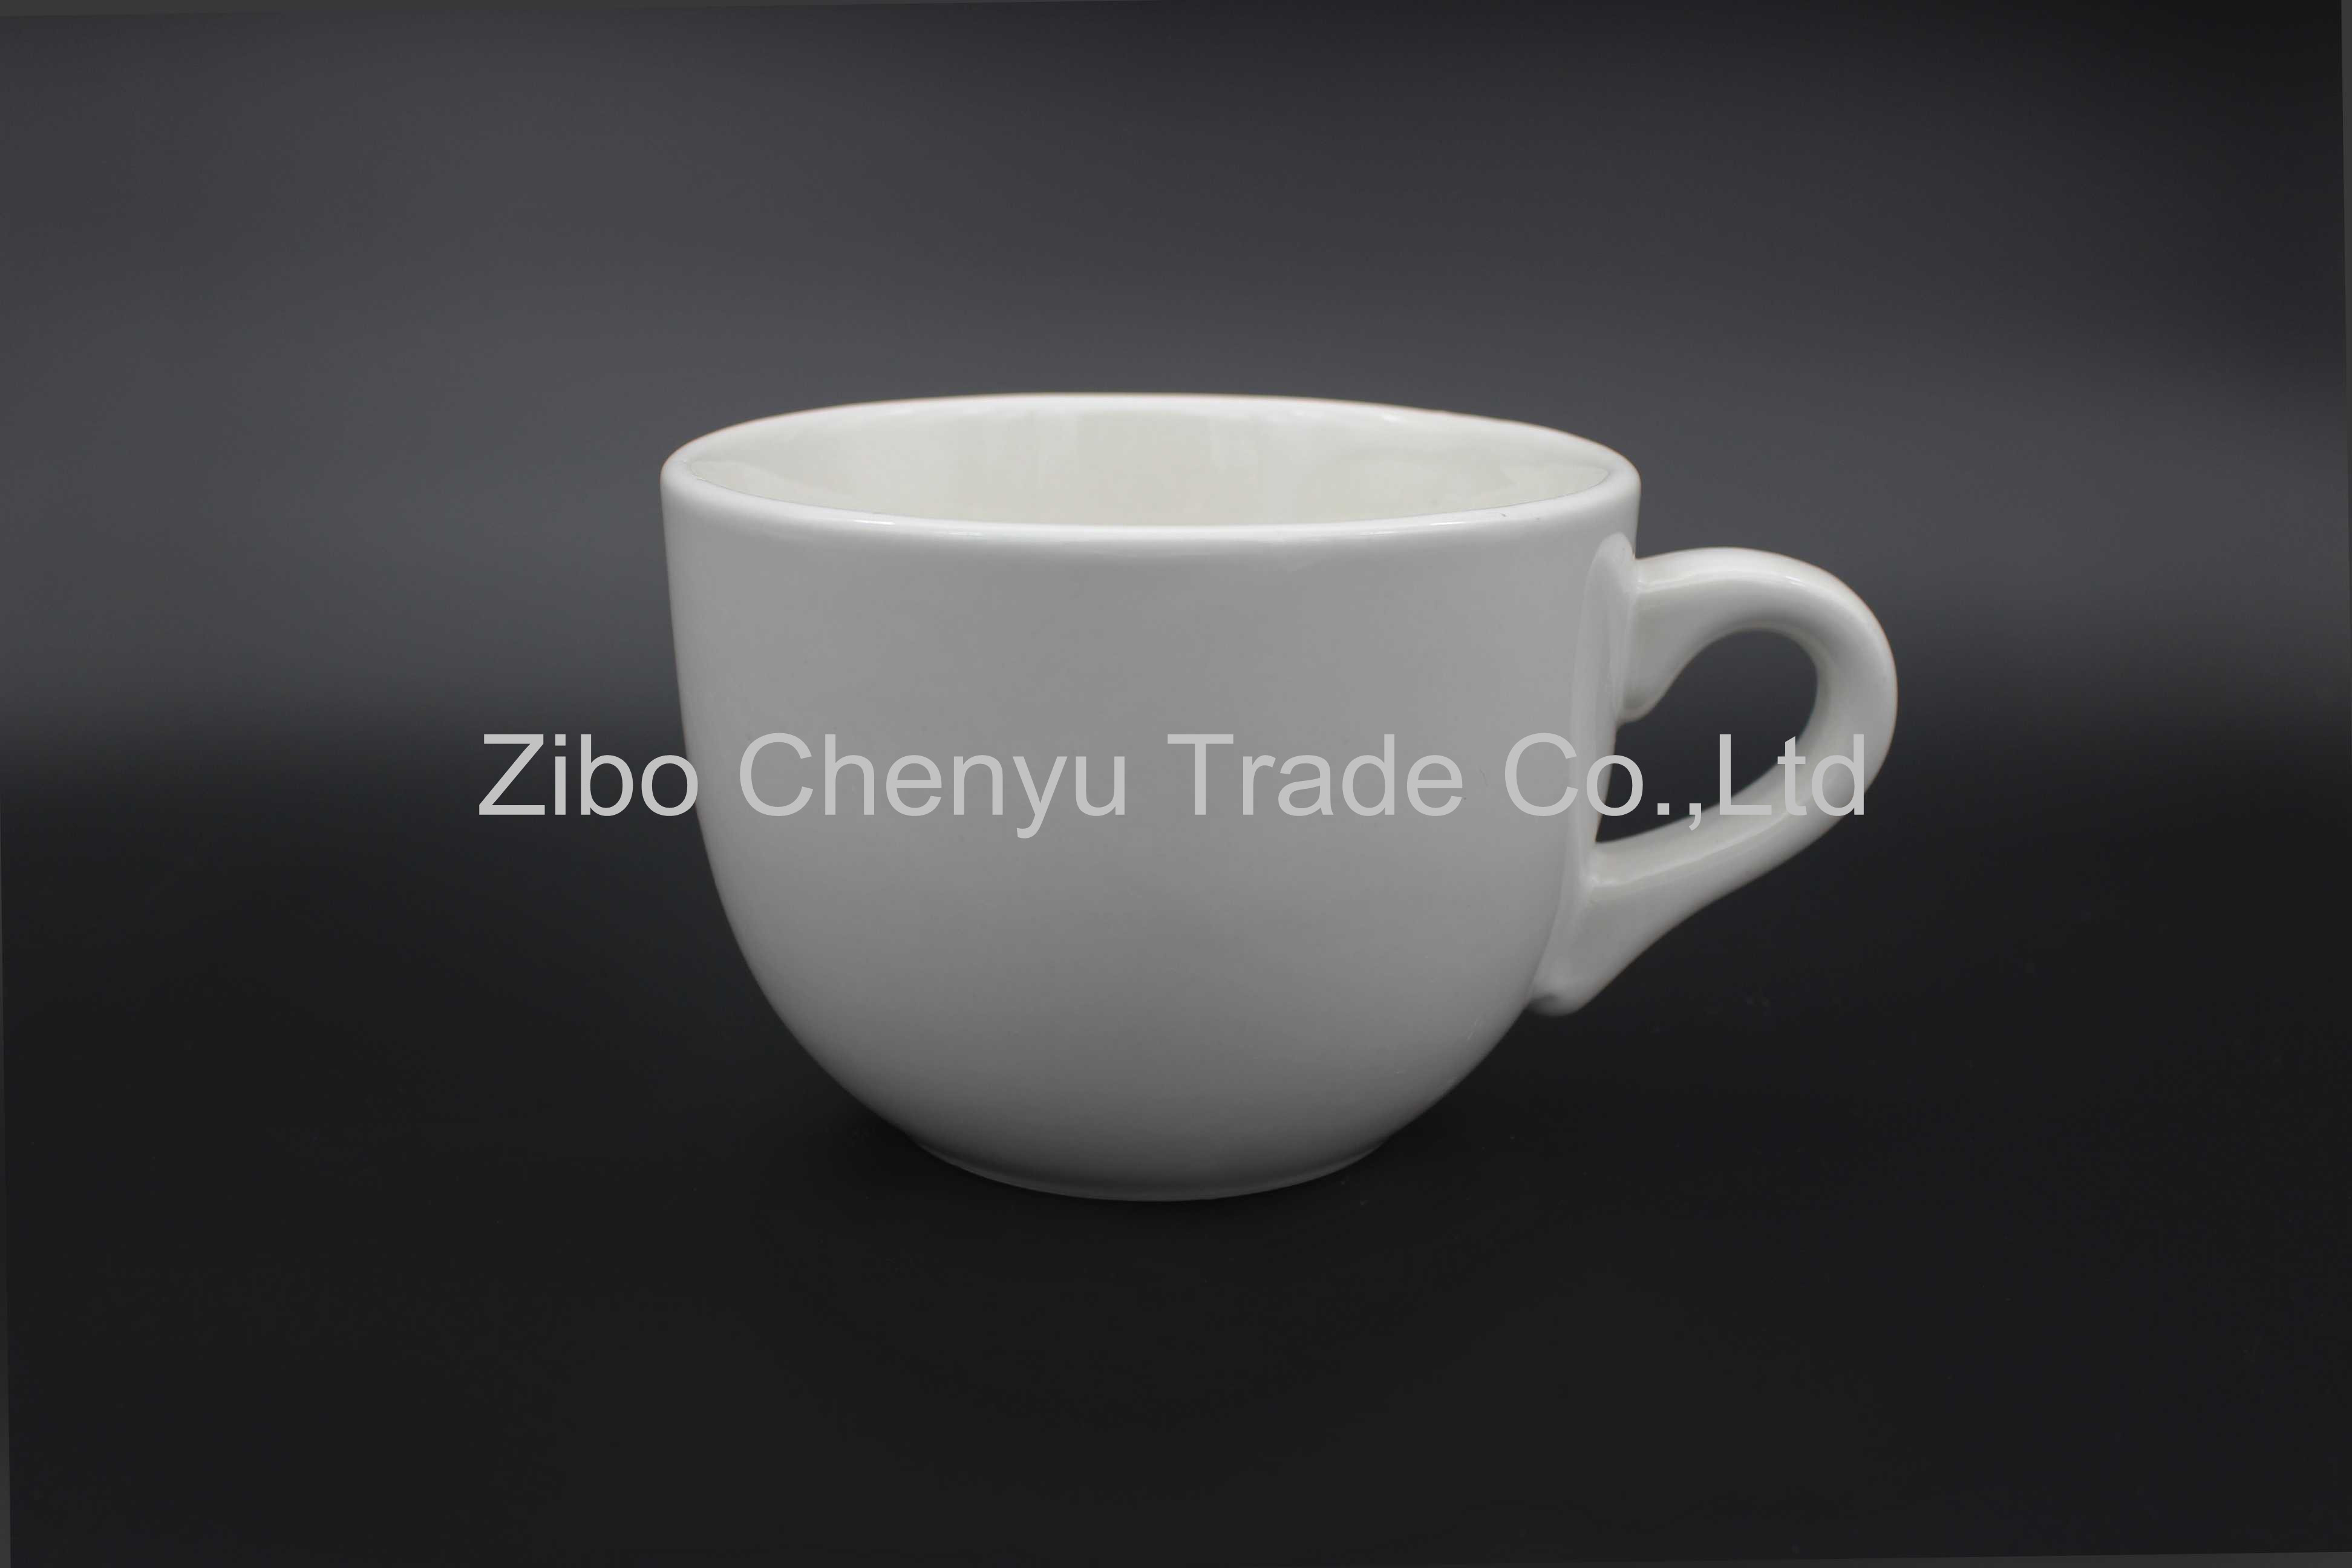 porcelain coffee mug gift product promotion